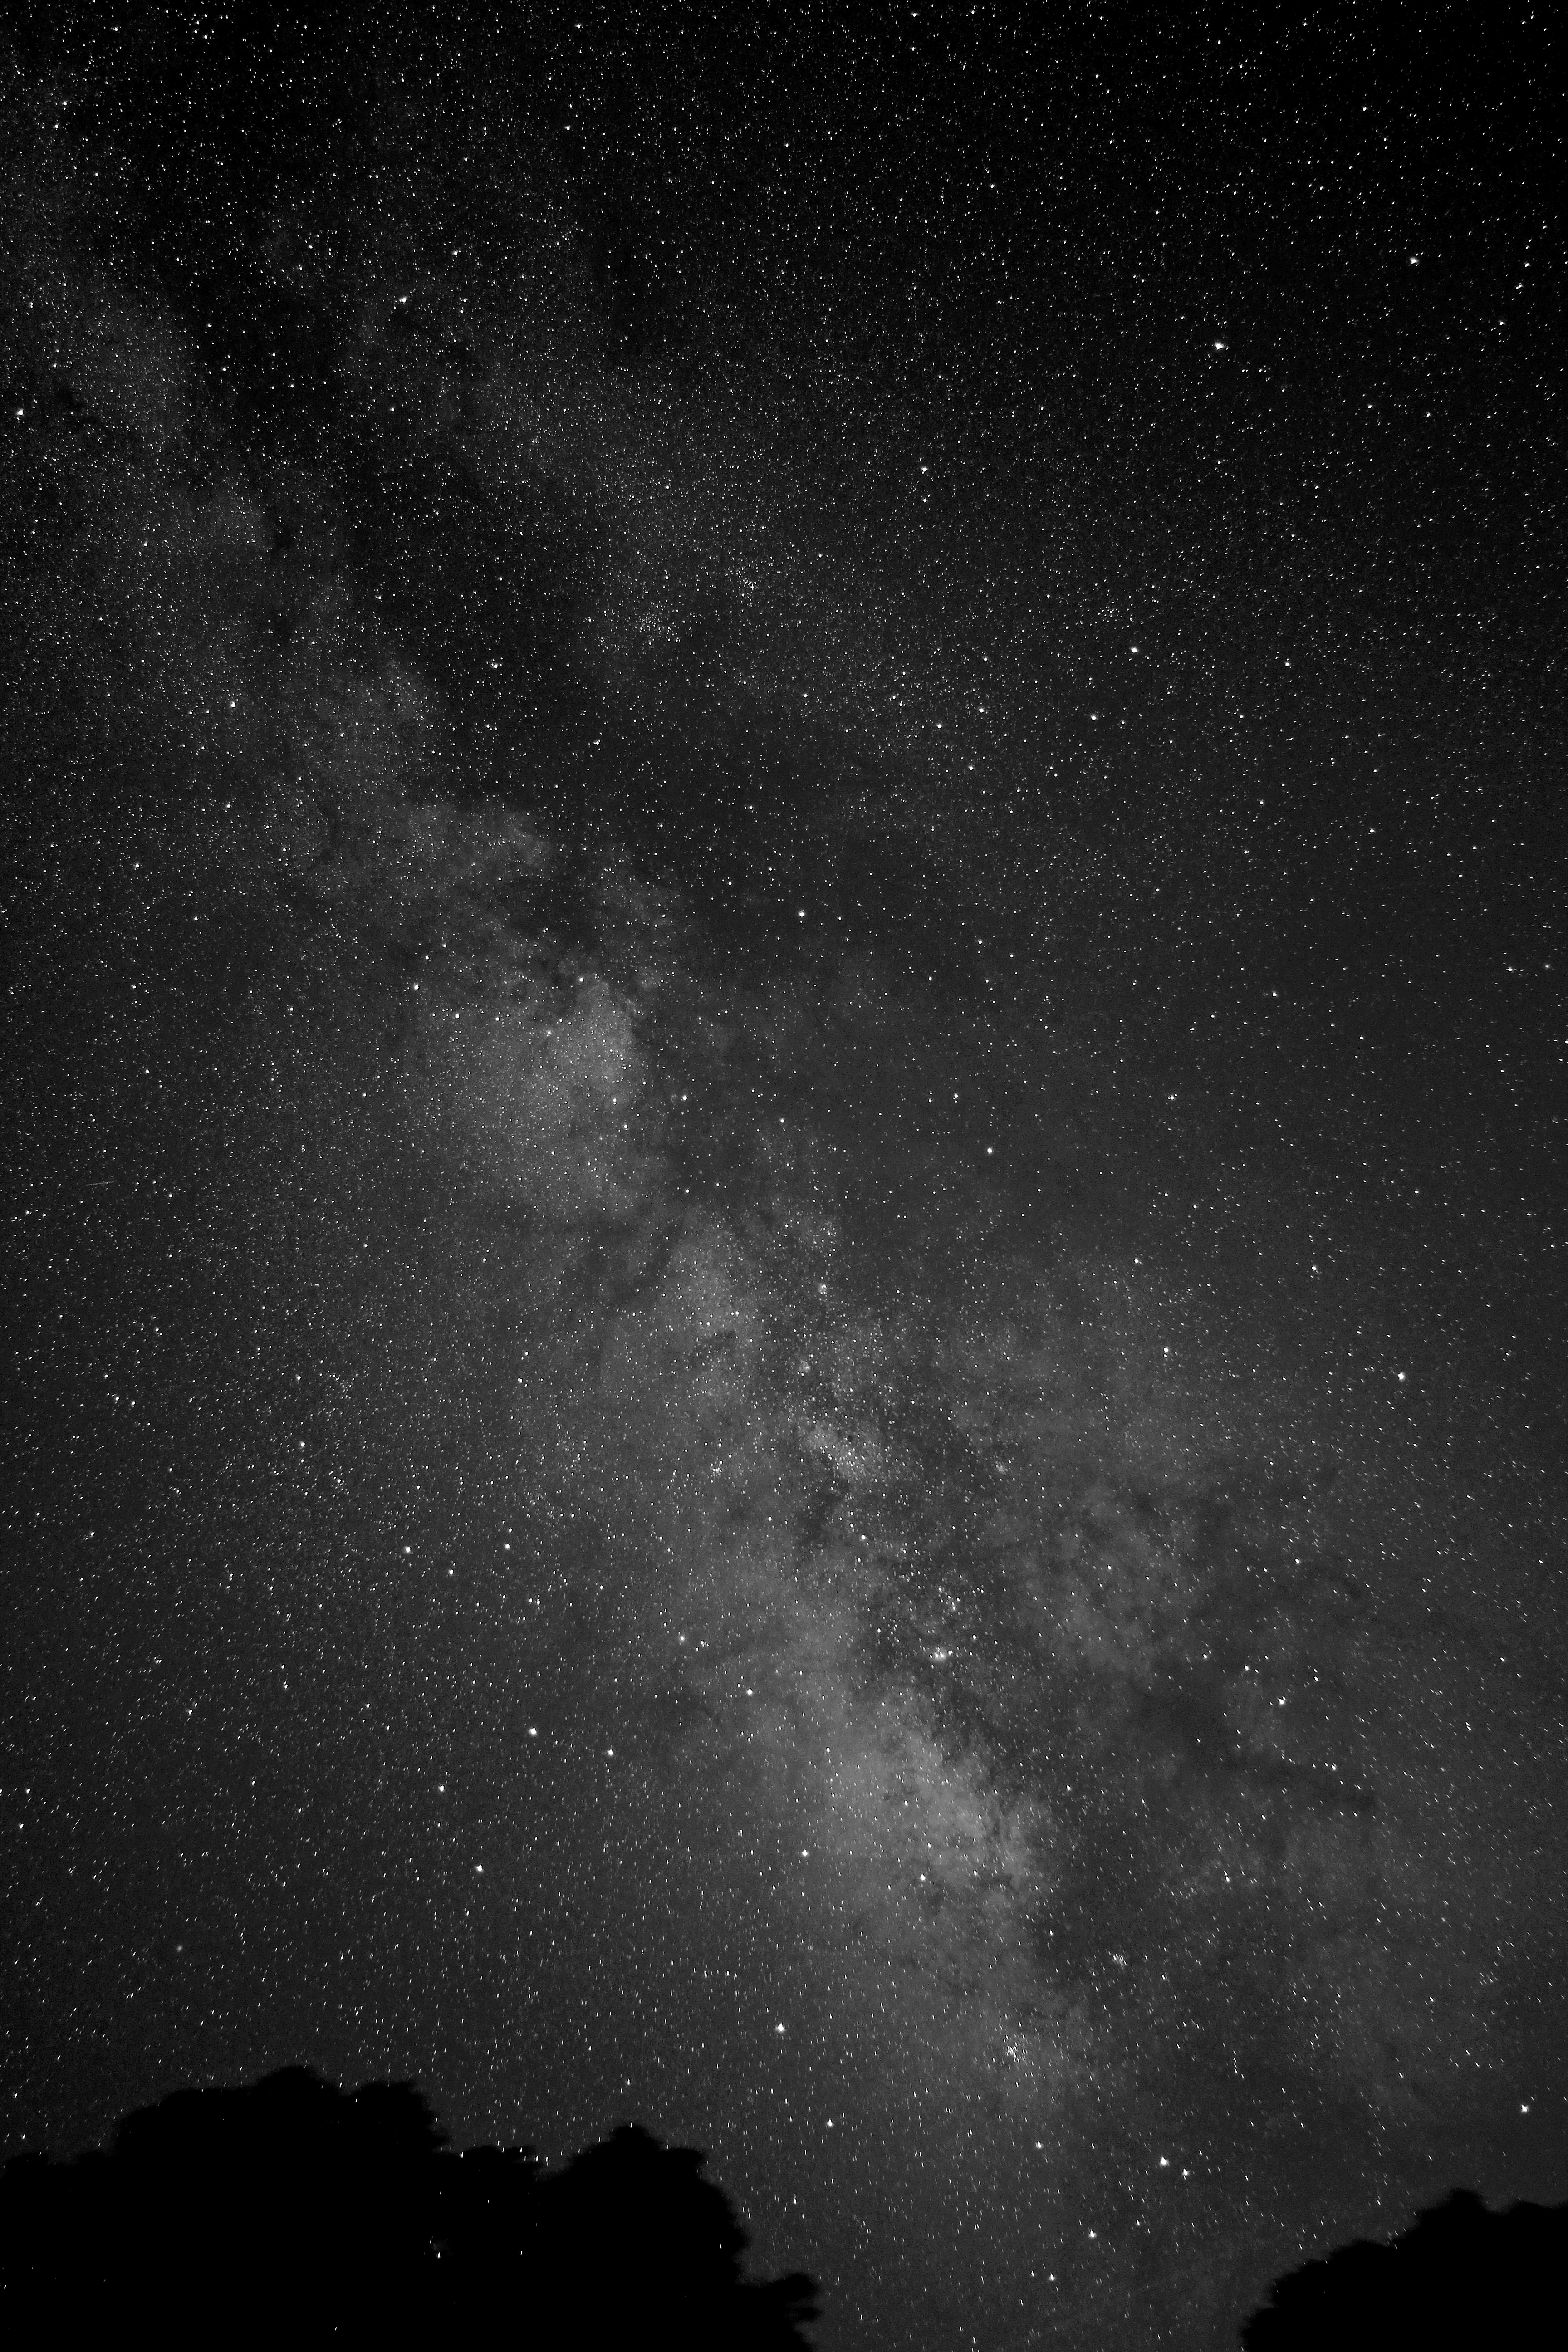 Milky Way Glows in Beautiful Black-and-White Photo